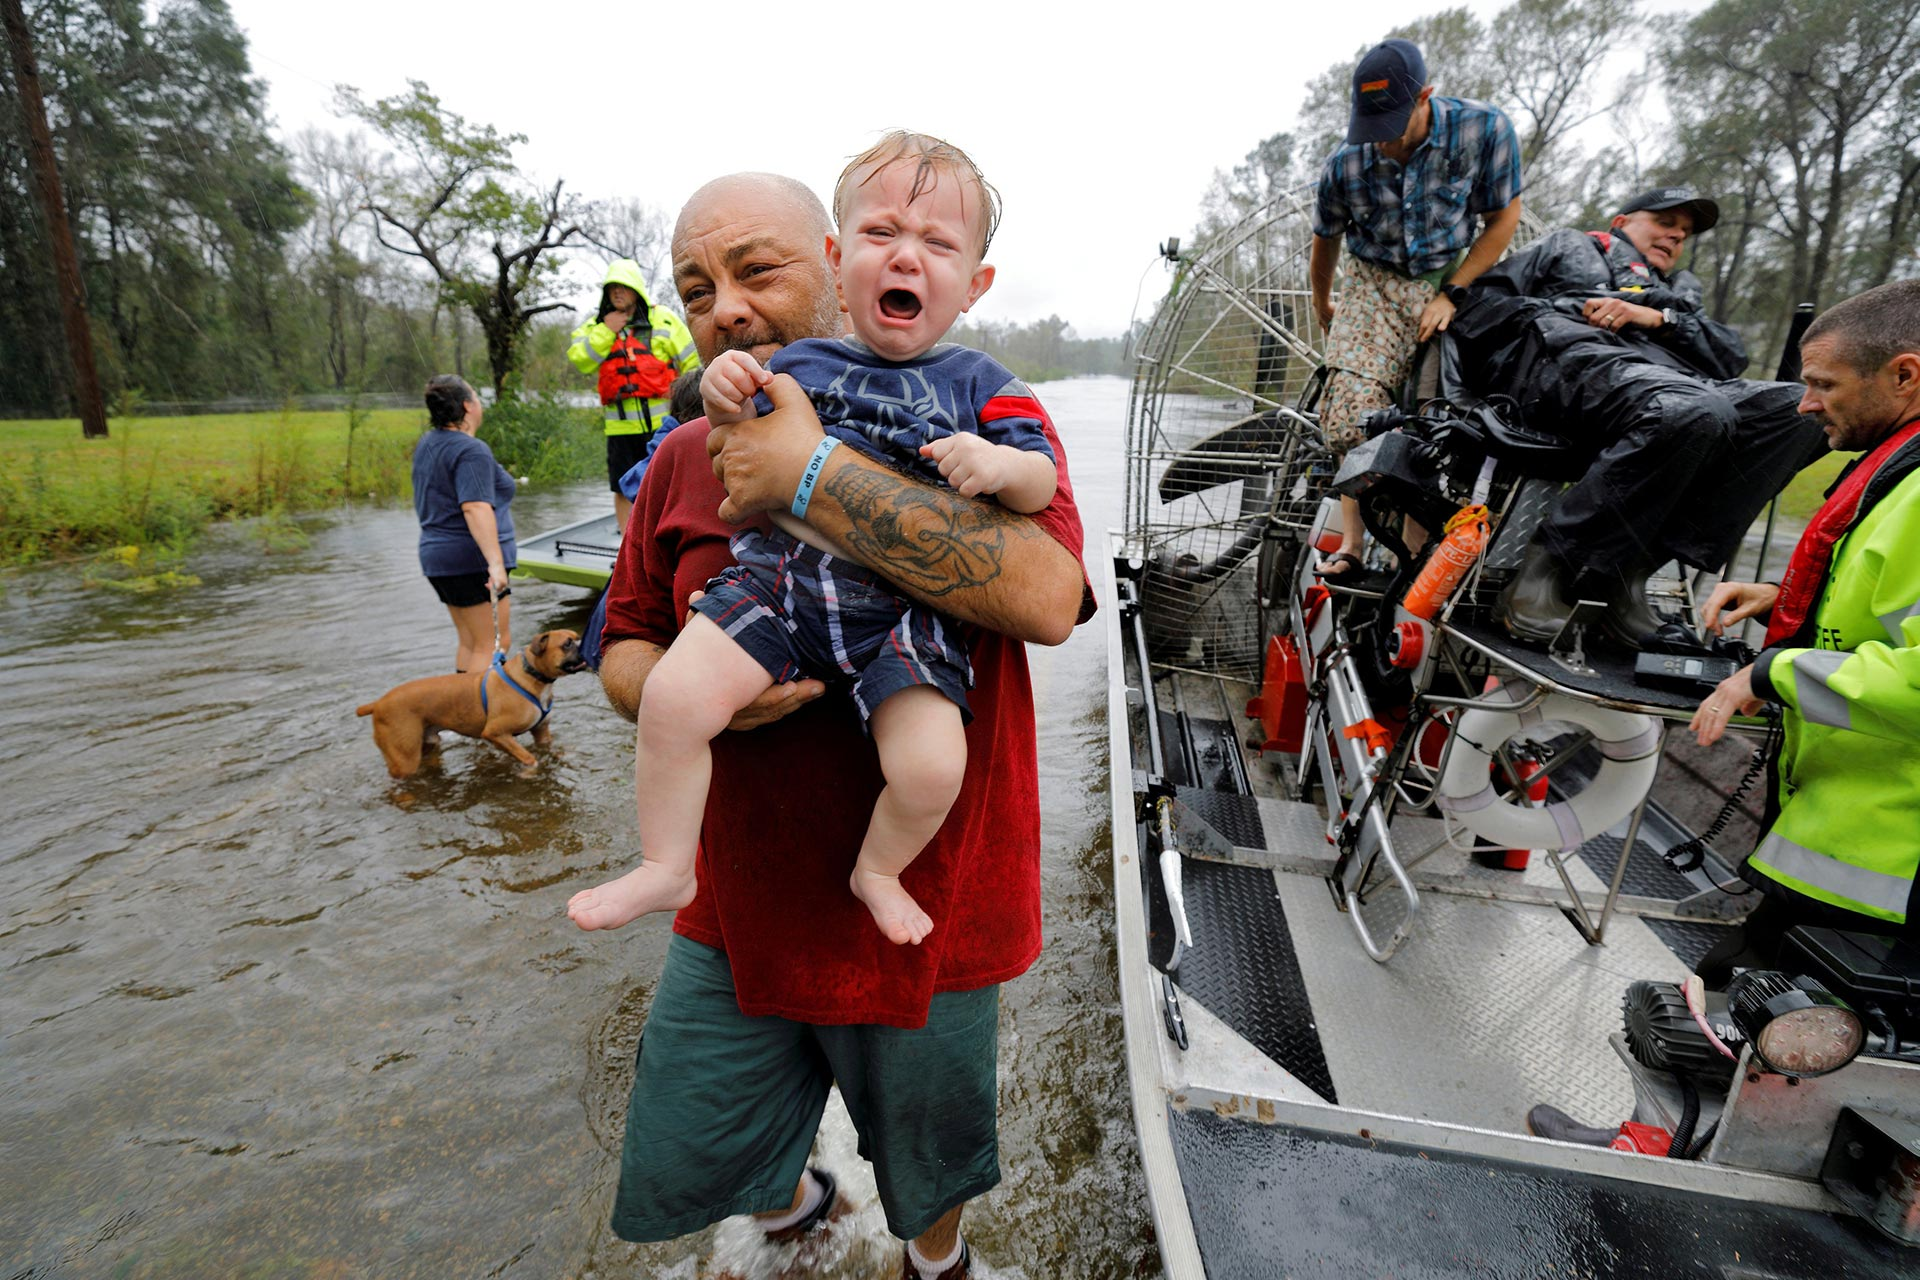 Rescue from rising floodwaters in the aftermath of Hurricane Florence